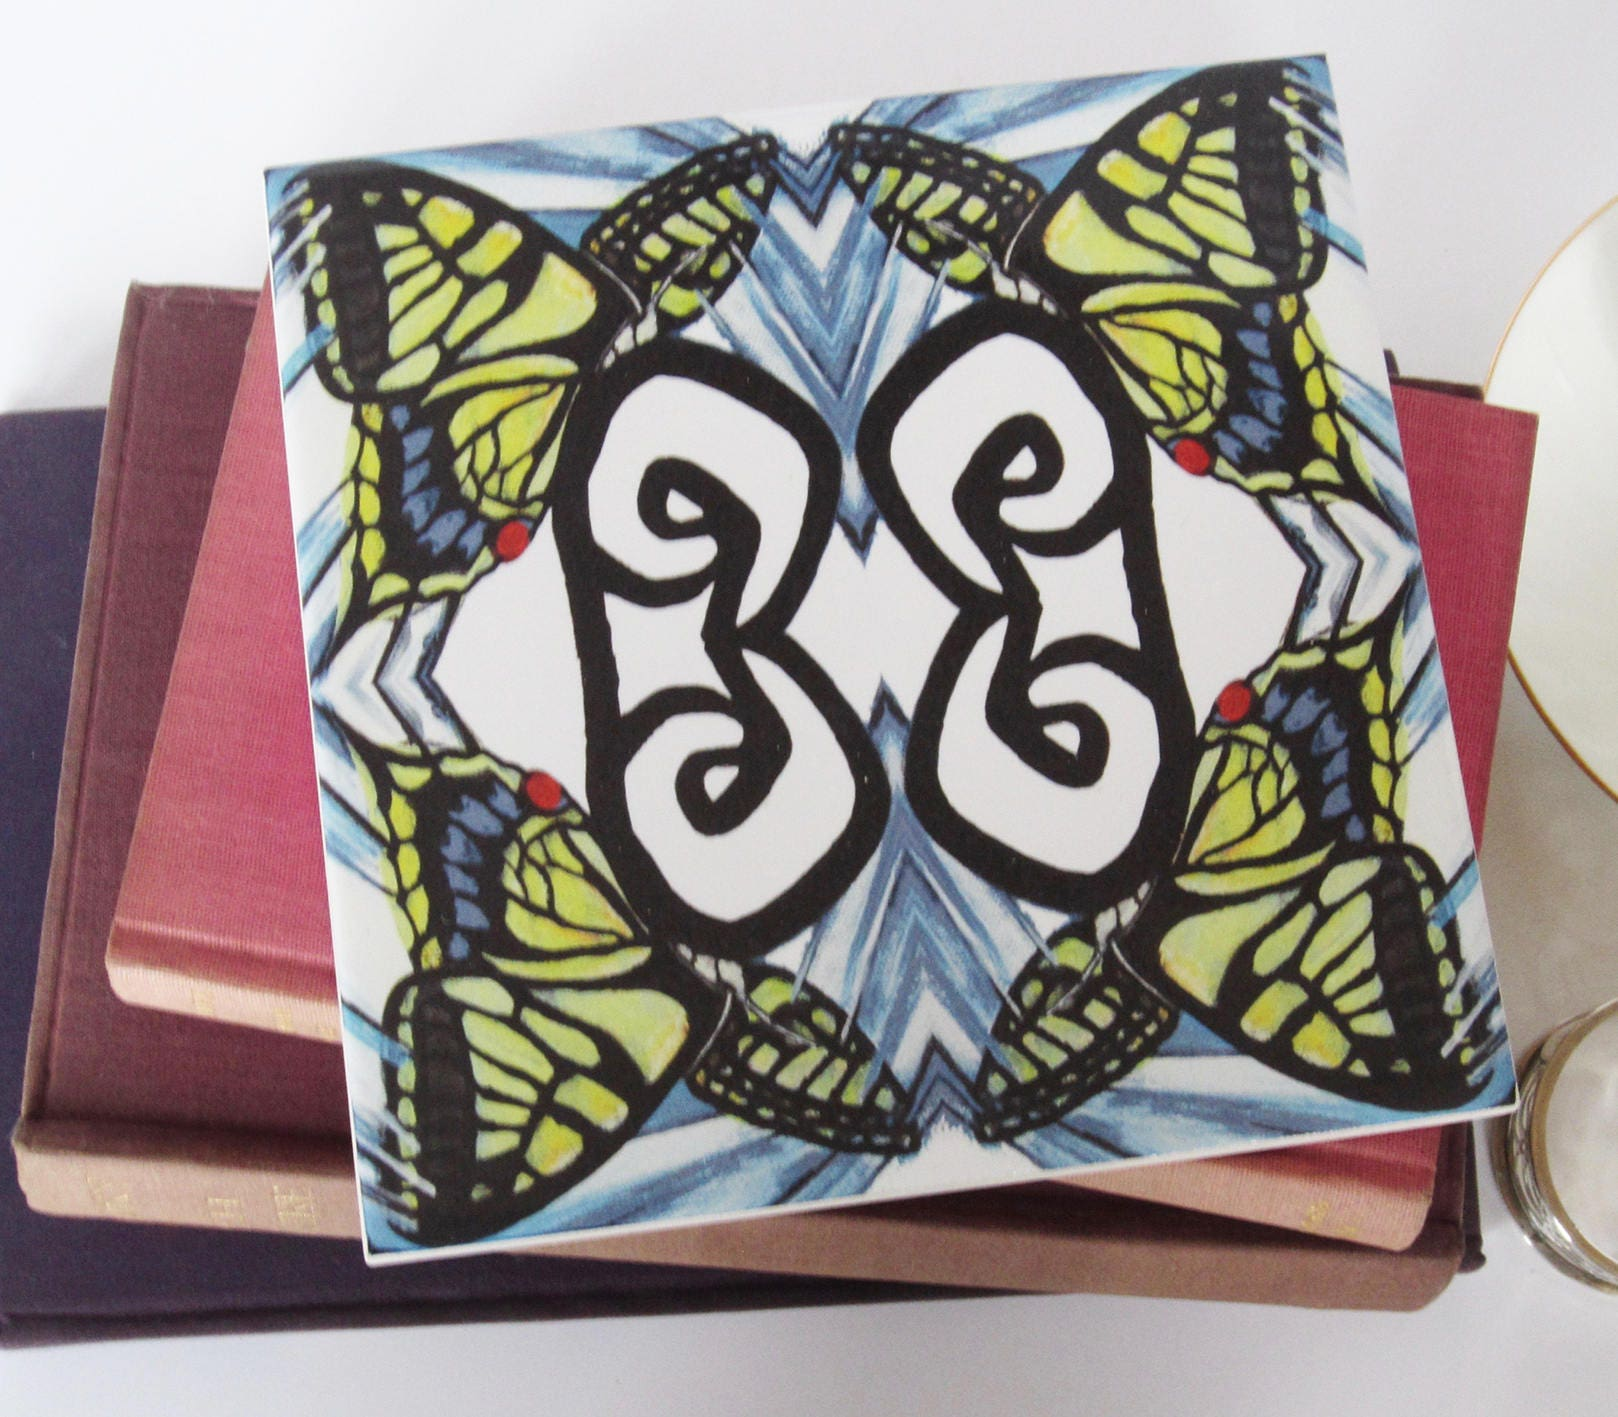 Geometric swallowtail butterfly design ceramic tile trivet with cork geometric swallowtail butterfly design ceramic tile trivet with cork backing from jacqueline talbot designs dailygadgetfo Choice Image